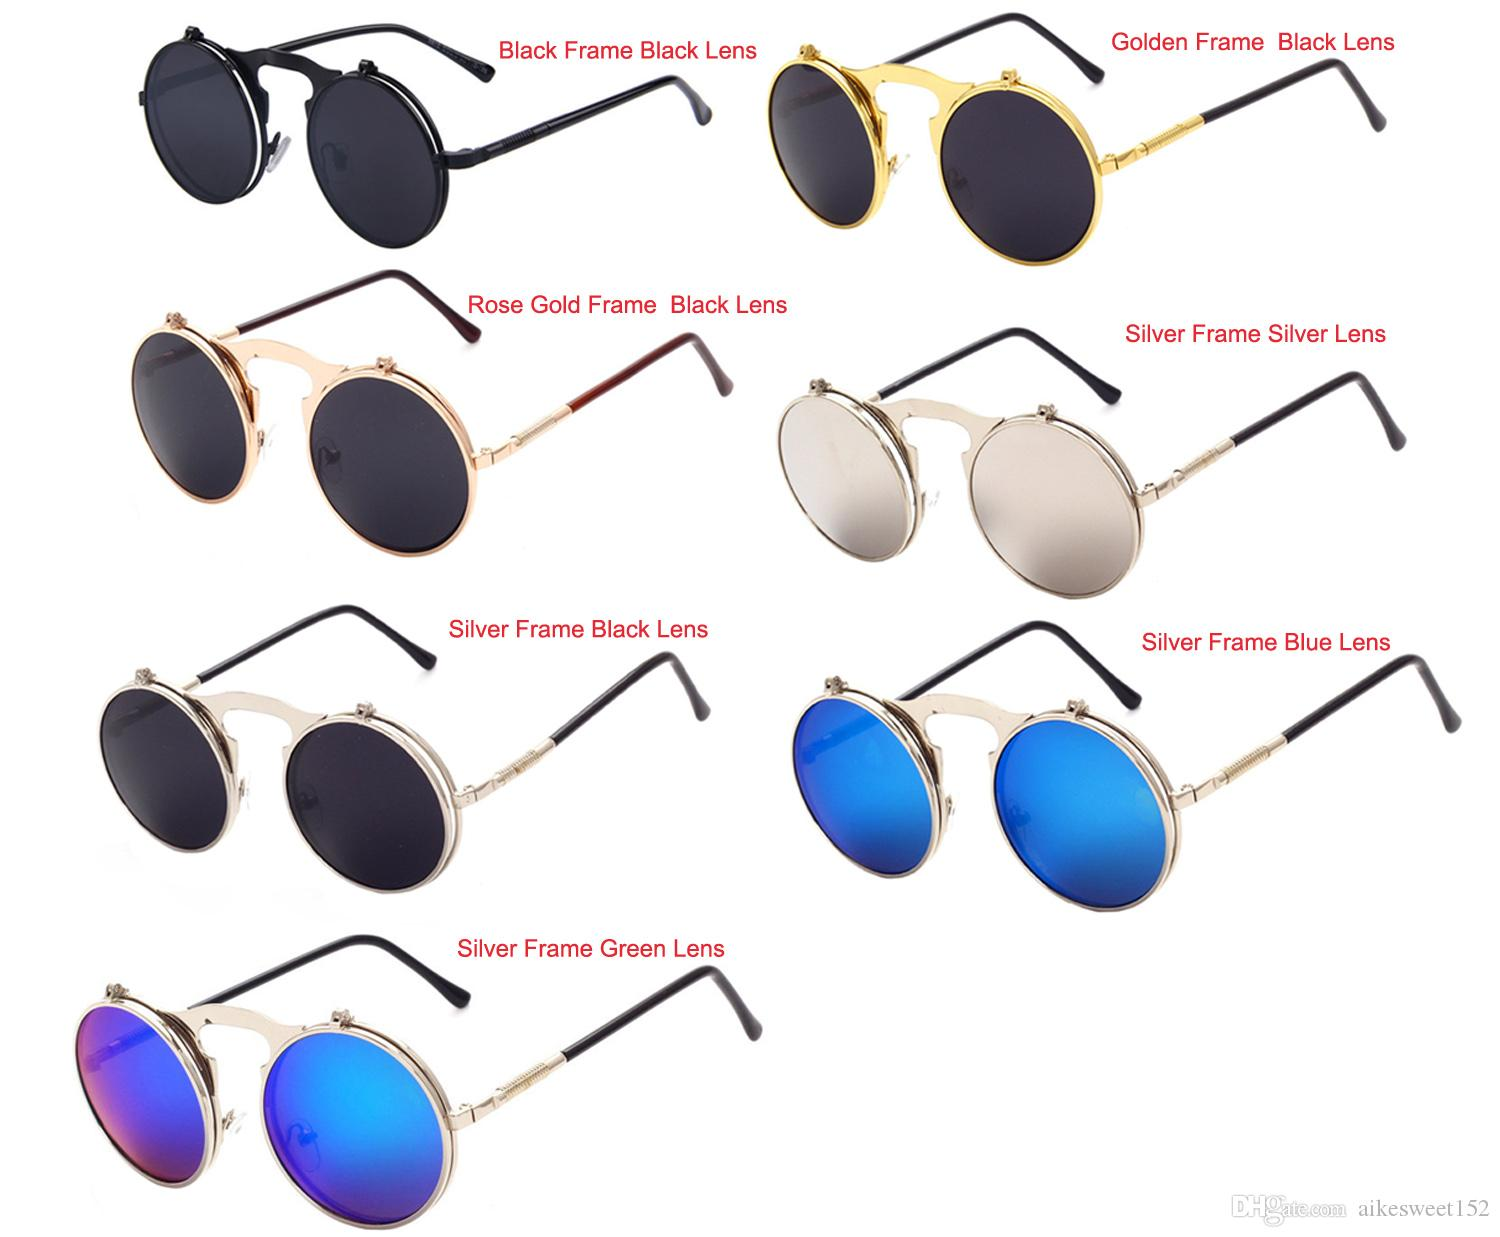 12faea72d9 2019 Unisex Fashion UV400 Steampunk Gothic Vintage Flip Up Round Eyeglasses  Retro Metal Frame Mirrored Sunglasses Goggles From Aikesweet152